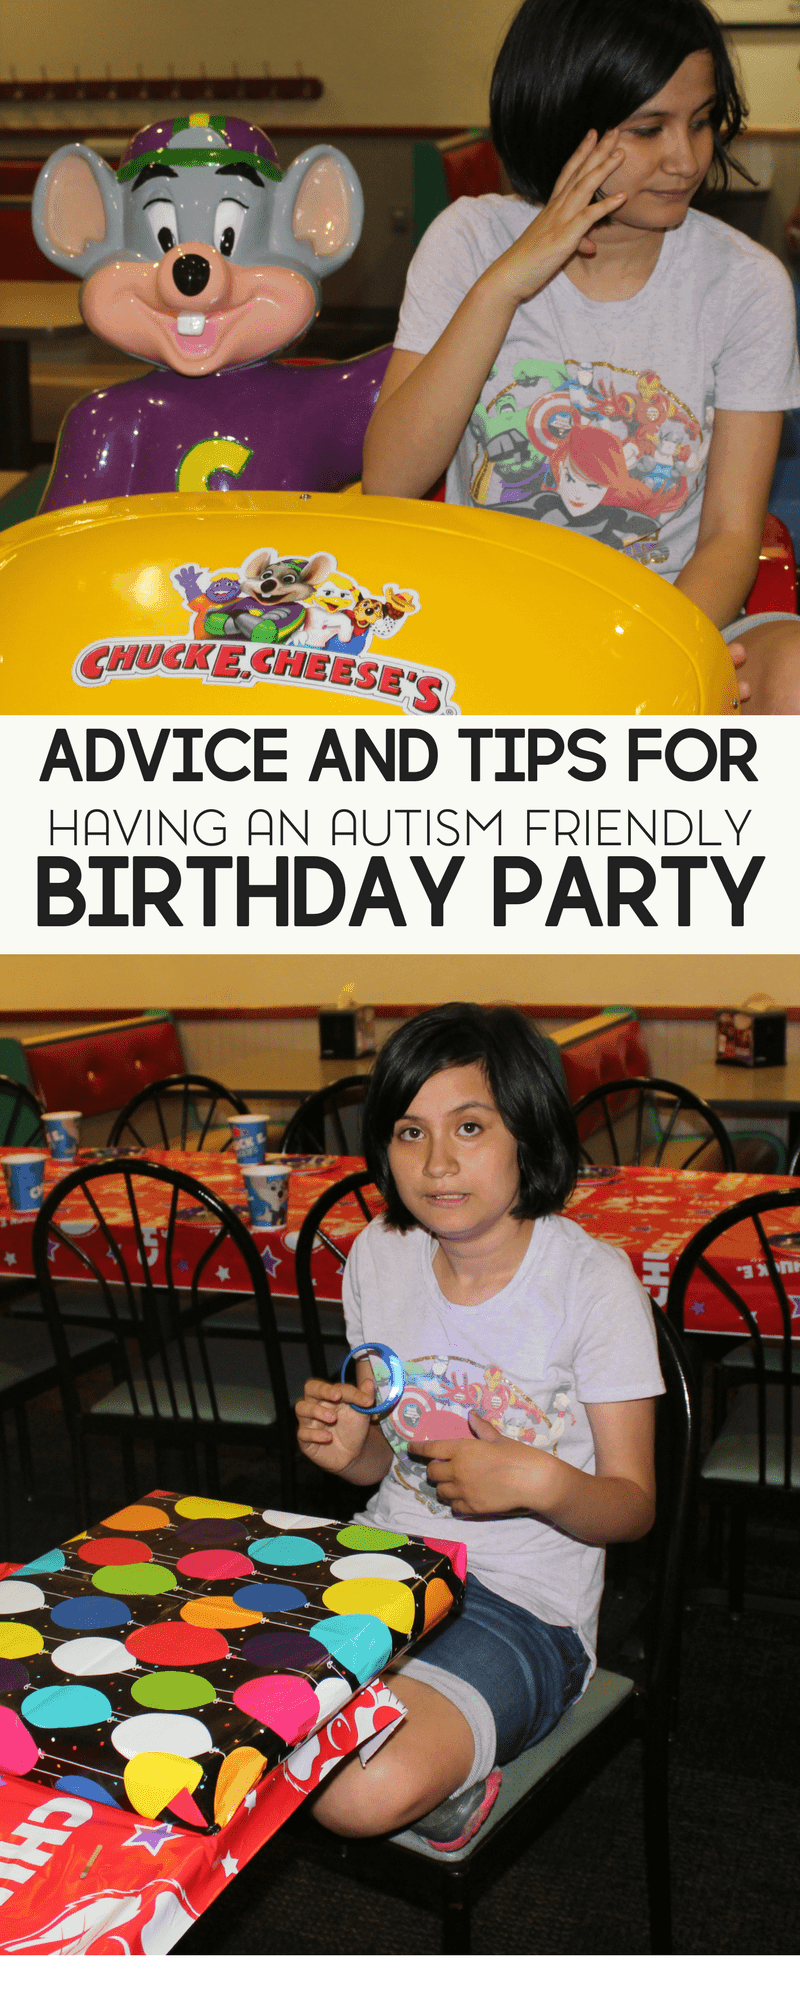 Advice and Tips for Planning an Autism Friendly Birthday Party